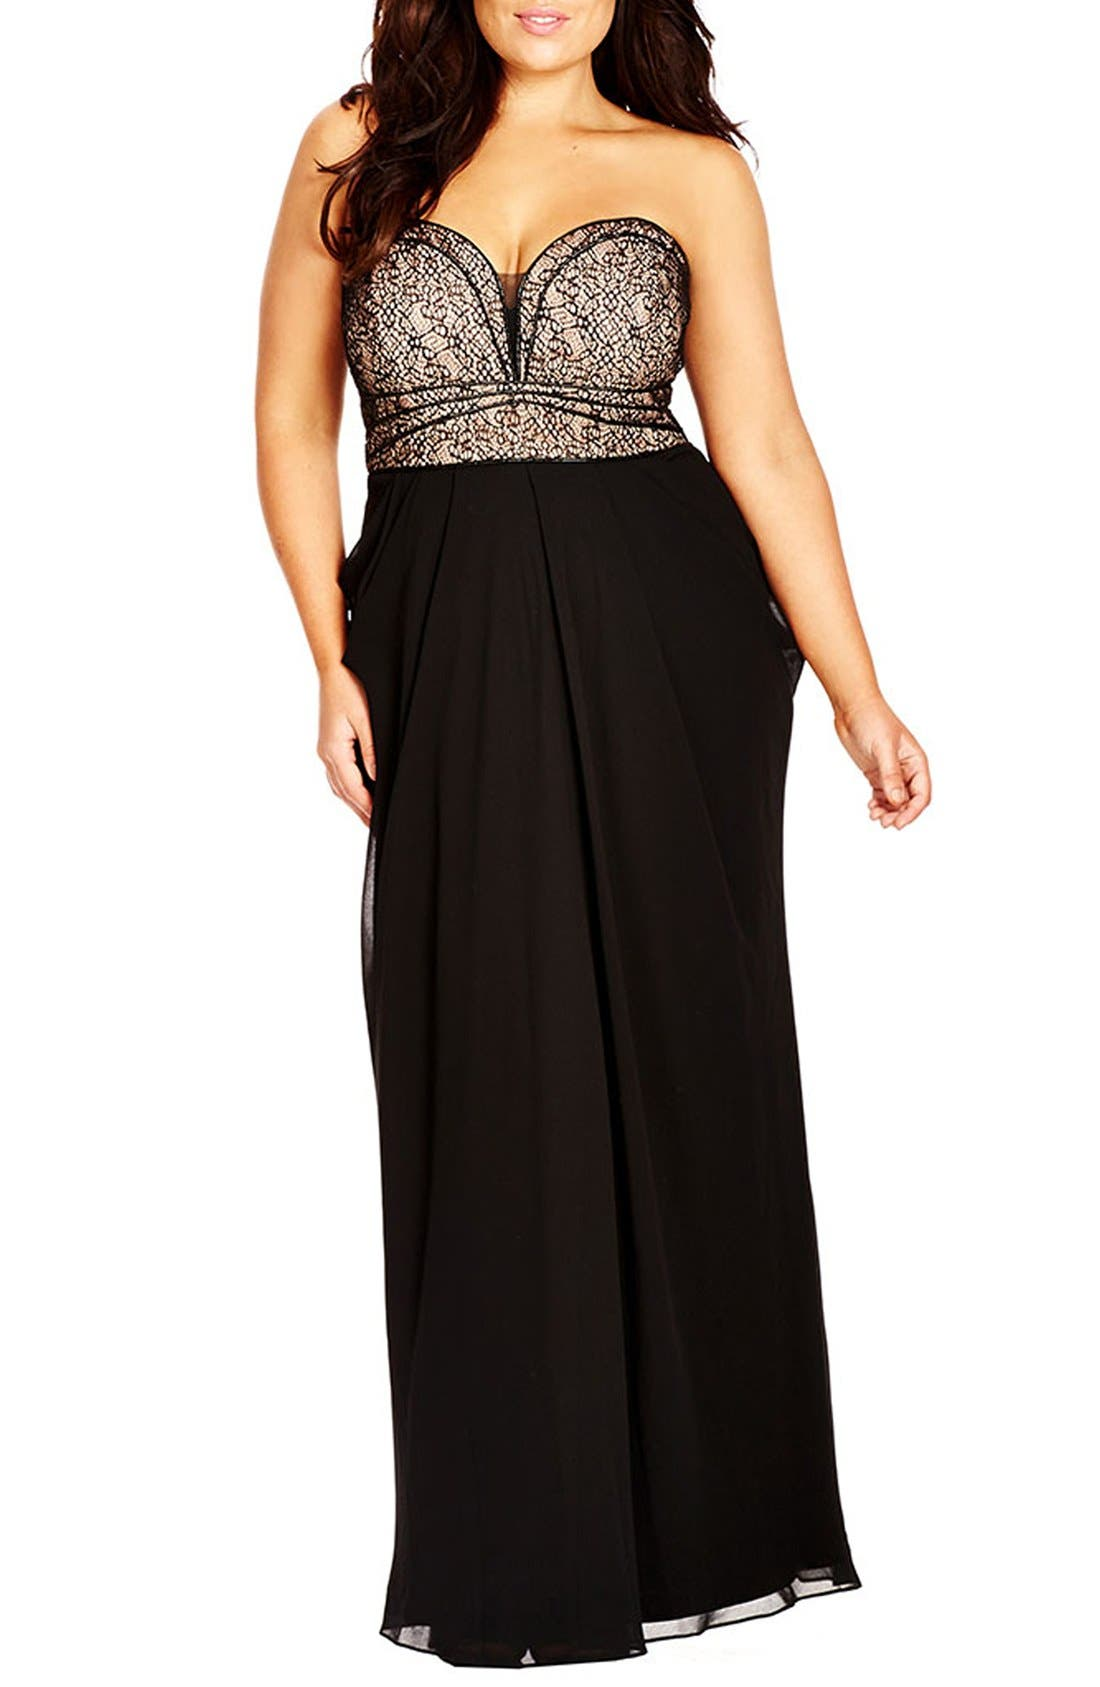 CITY CHIC 'Motown' Strapless Lace & Chiffon Maxi